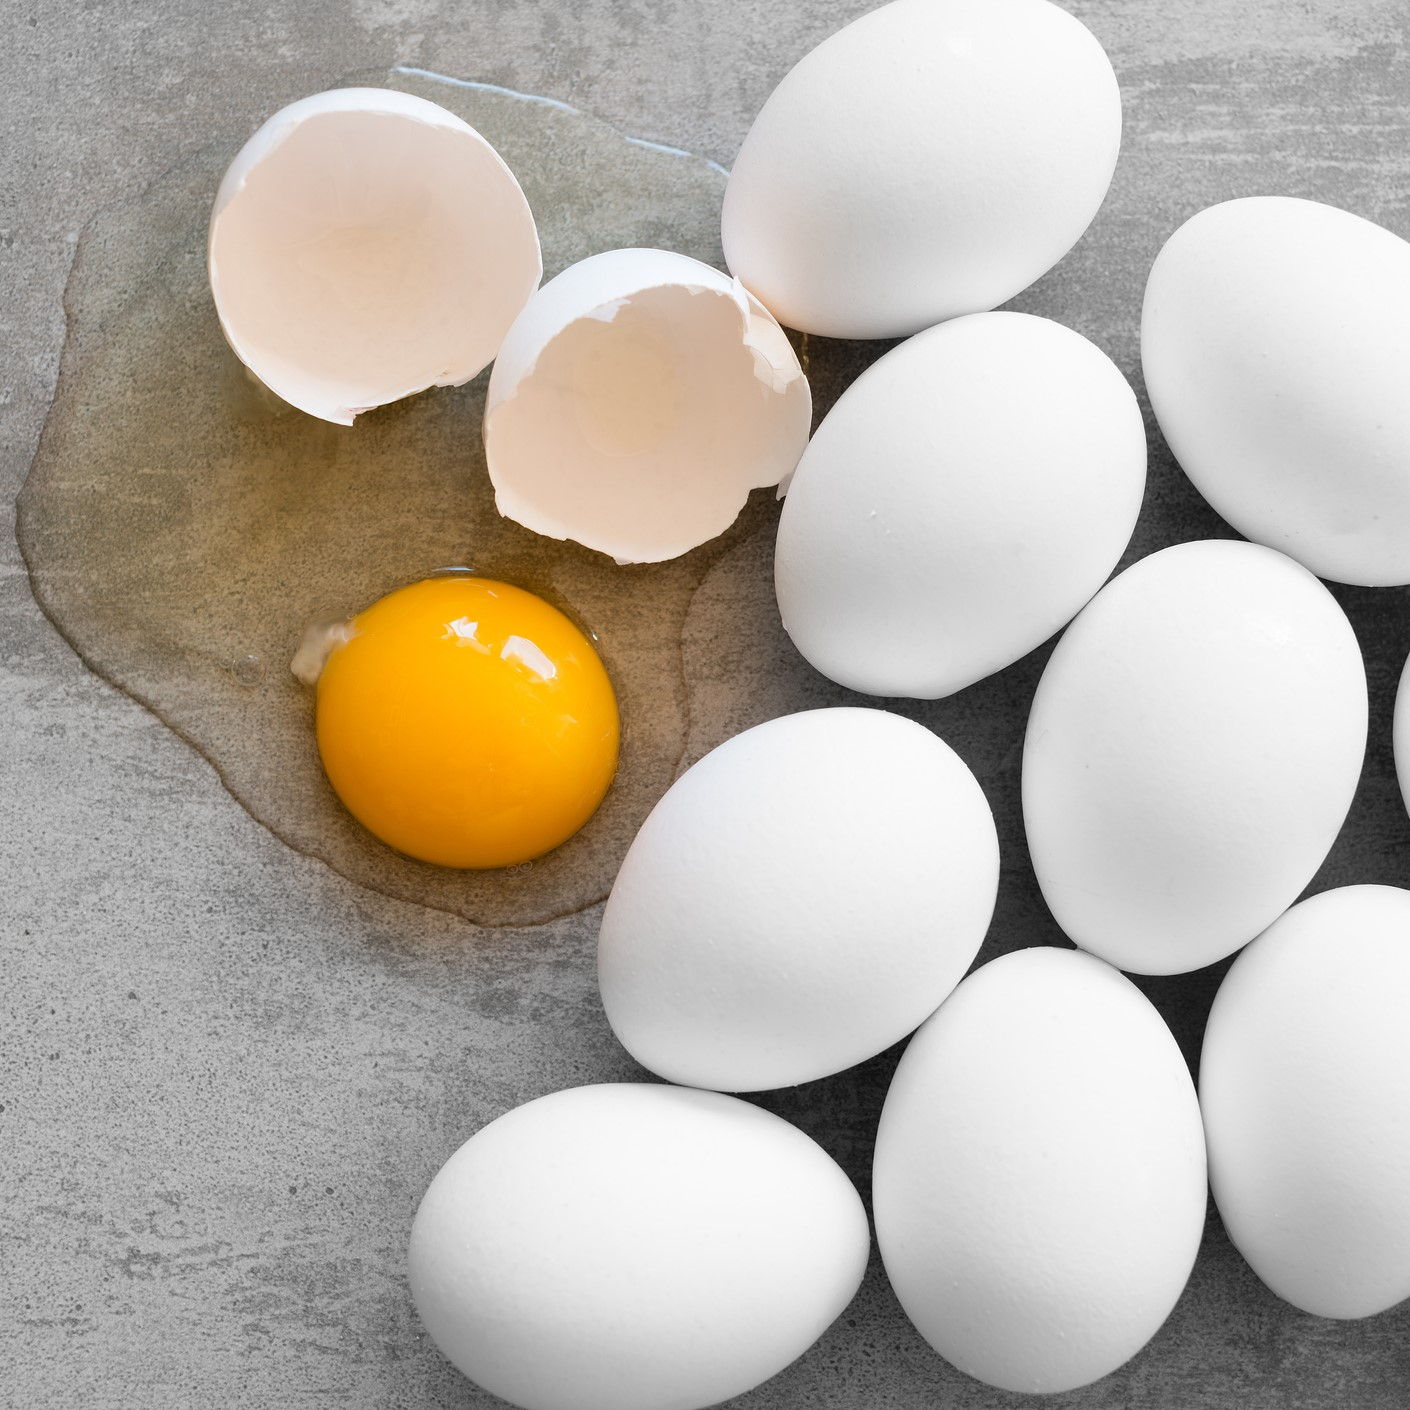 White eggs, one broken egg showing yolk